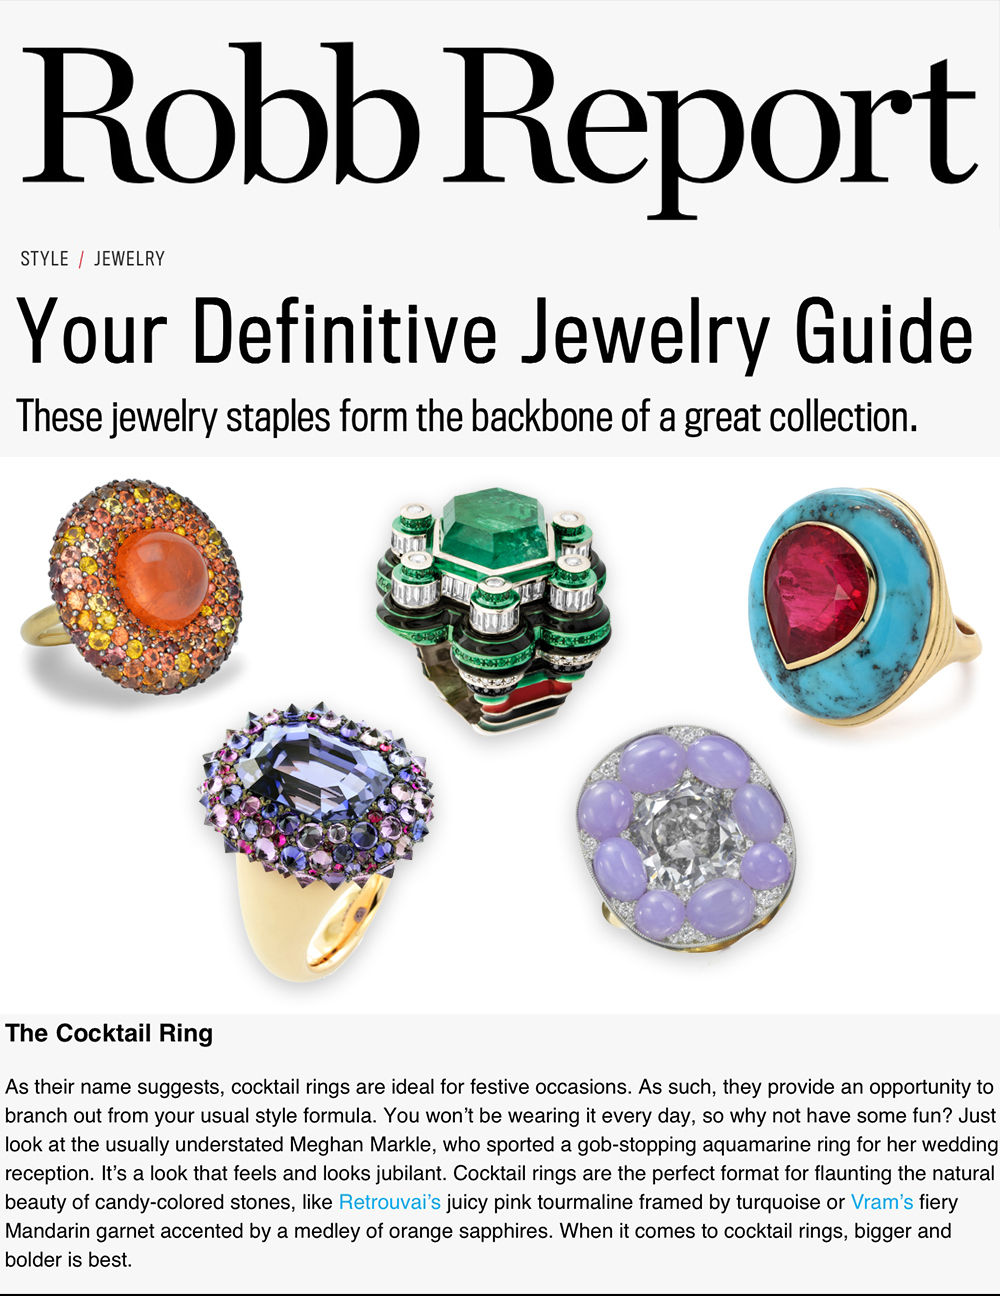 VRAM Jewelry Robb Report Mandarin Garnet Cocktail Ring